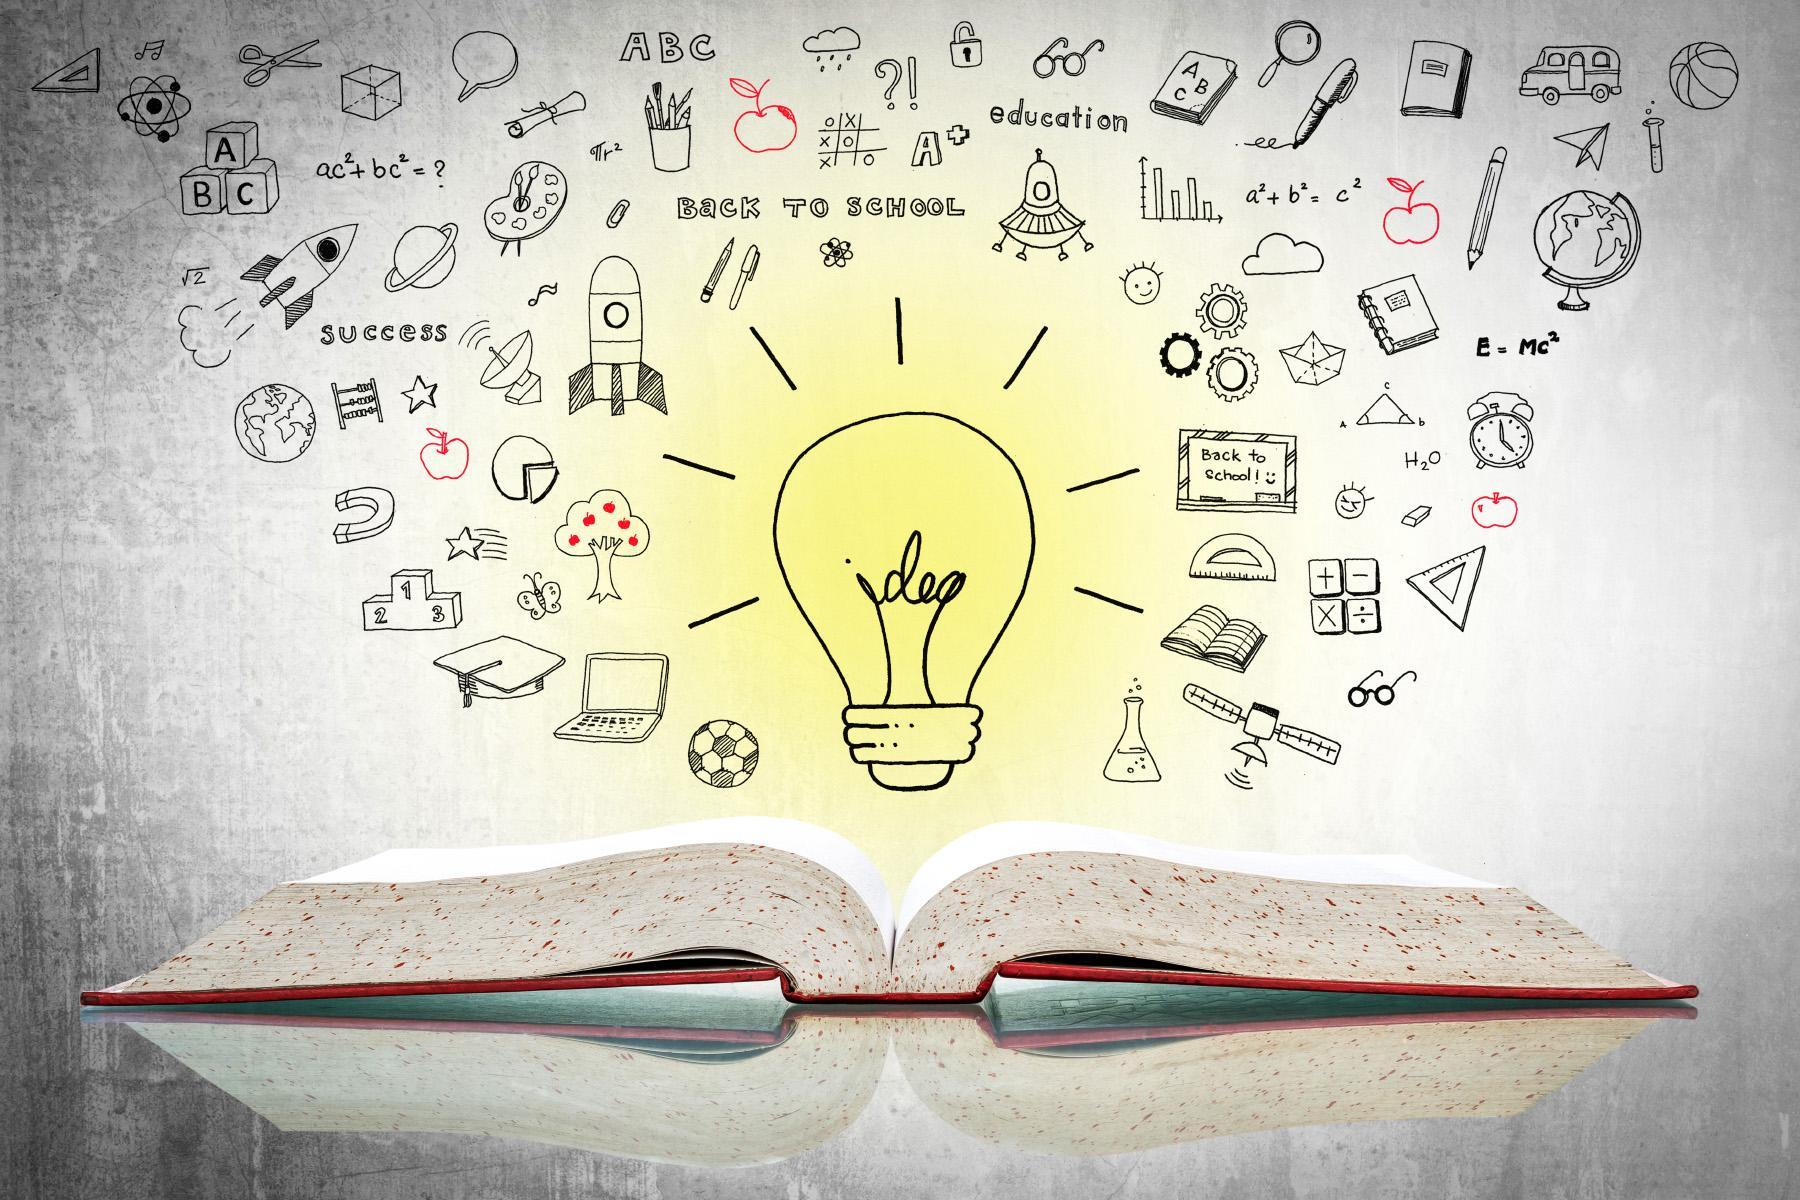 An illustration of an open book with a lightbulb and education-related doodles